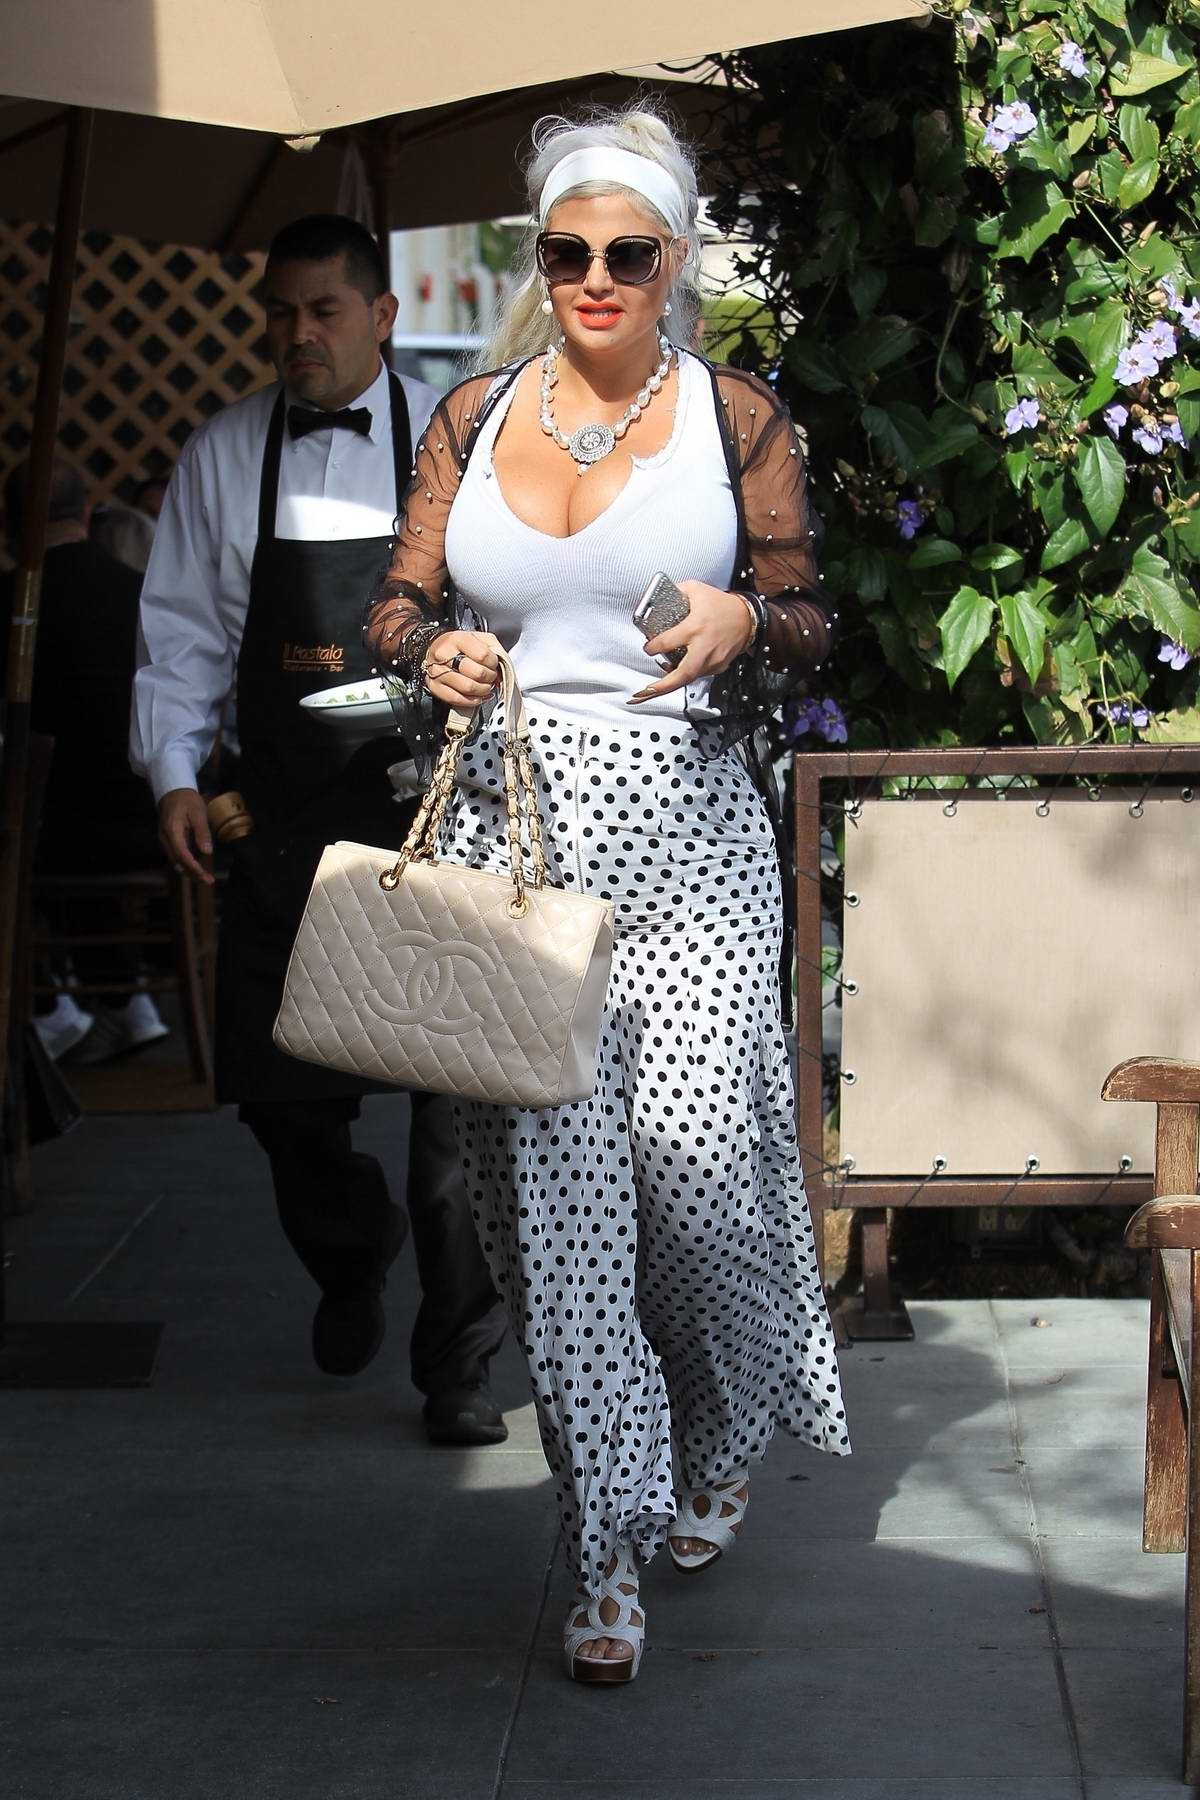 Sophia Vegas Wollersheim spotted leaving after lunch in Beverly Hills, Los Angeles